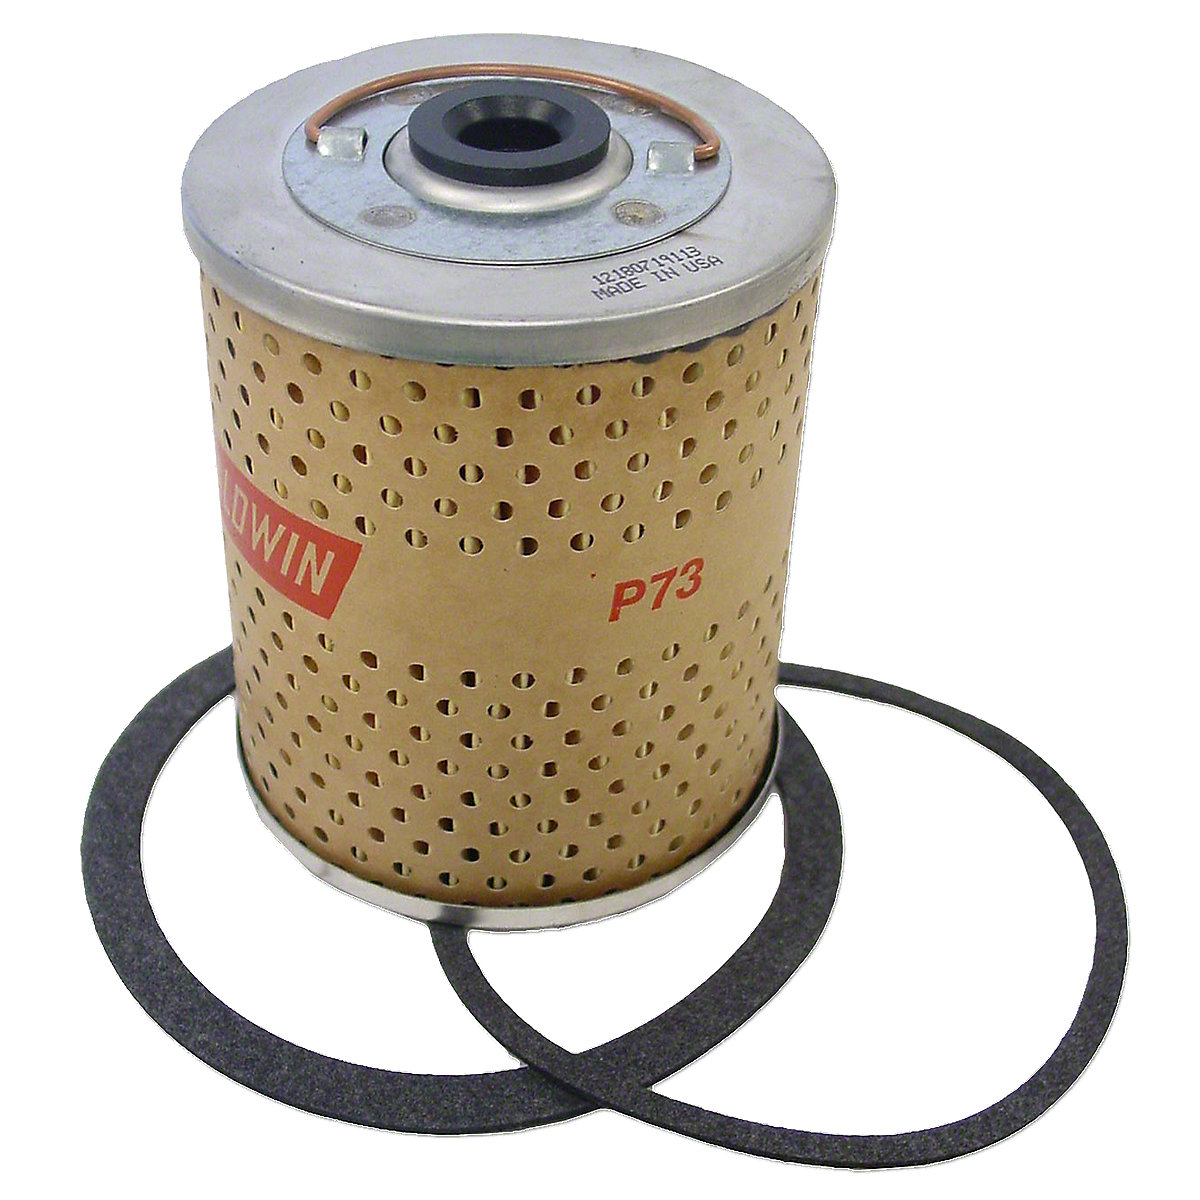 Oil Filter For Massey Ferguson Gas Tractors: 35, 50, 65, 85, 88, 135, 150, 165, 40, TO30, TO35, 50, Massey Harris: Colt 21, Mustang 23, Pacer 16, Pony, 101 jr, 102 jr, 20, 20K, 22, 30, 33, 50, 81, 82, 333.